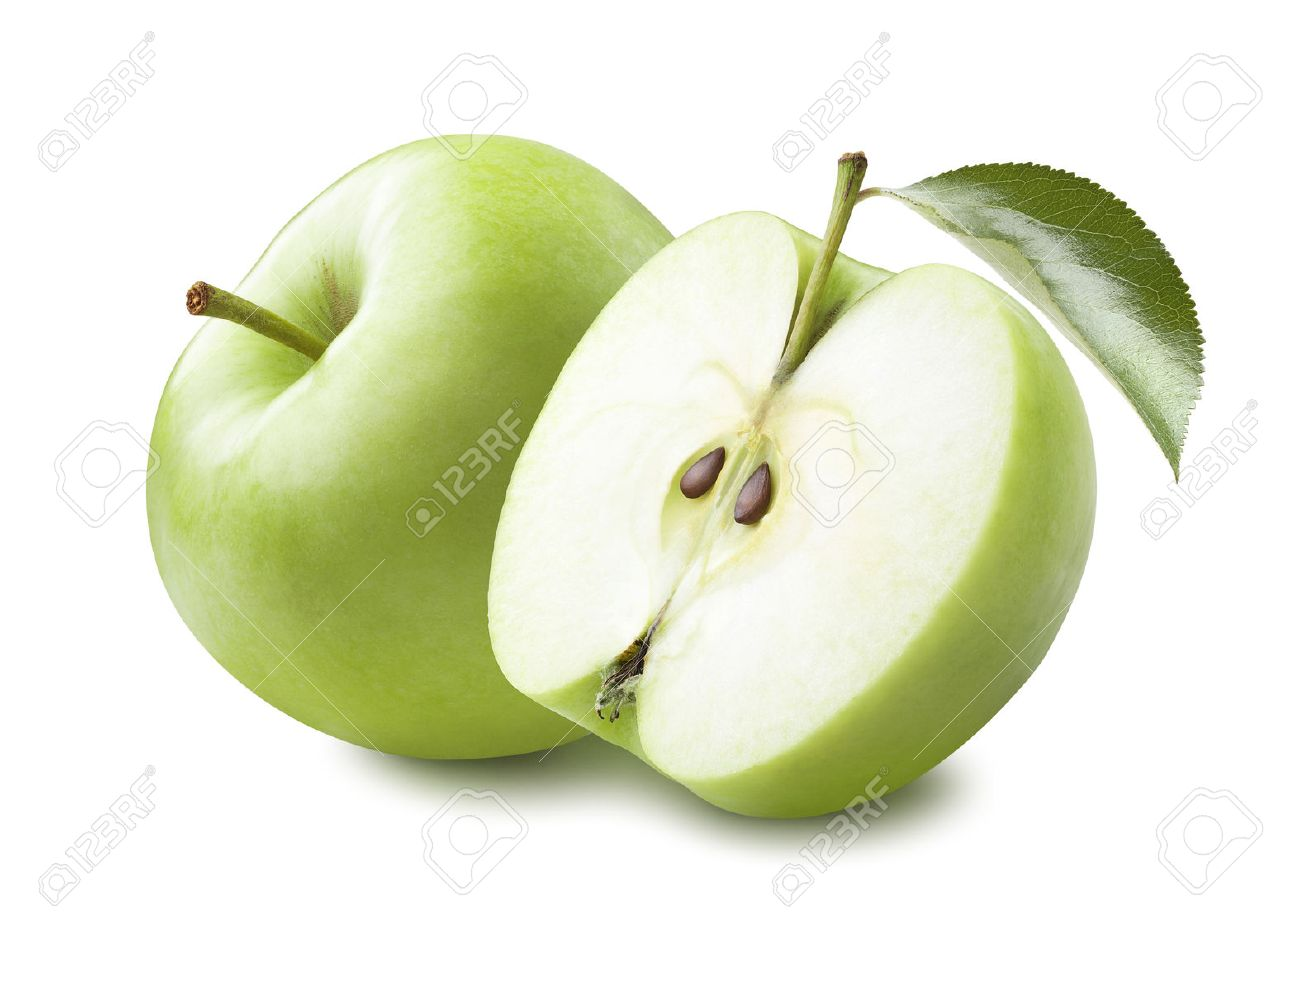 Whole green apple and half with leaf isolated on white background as package design element - 45293072